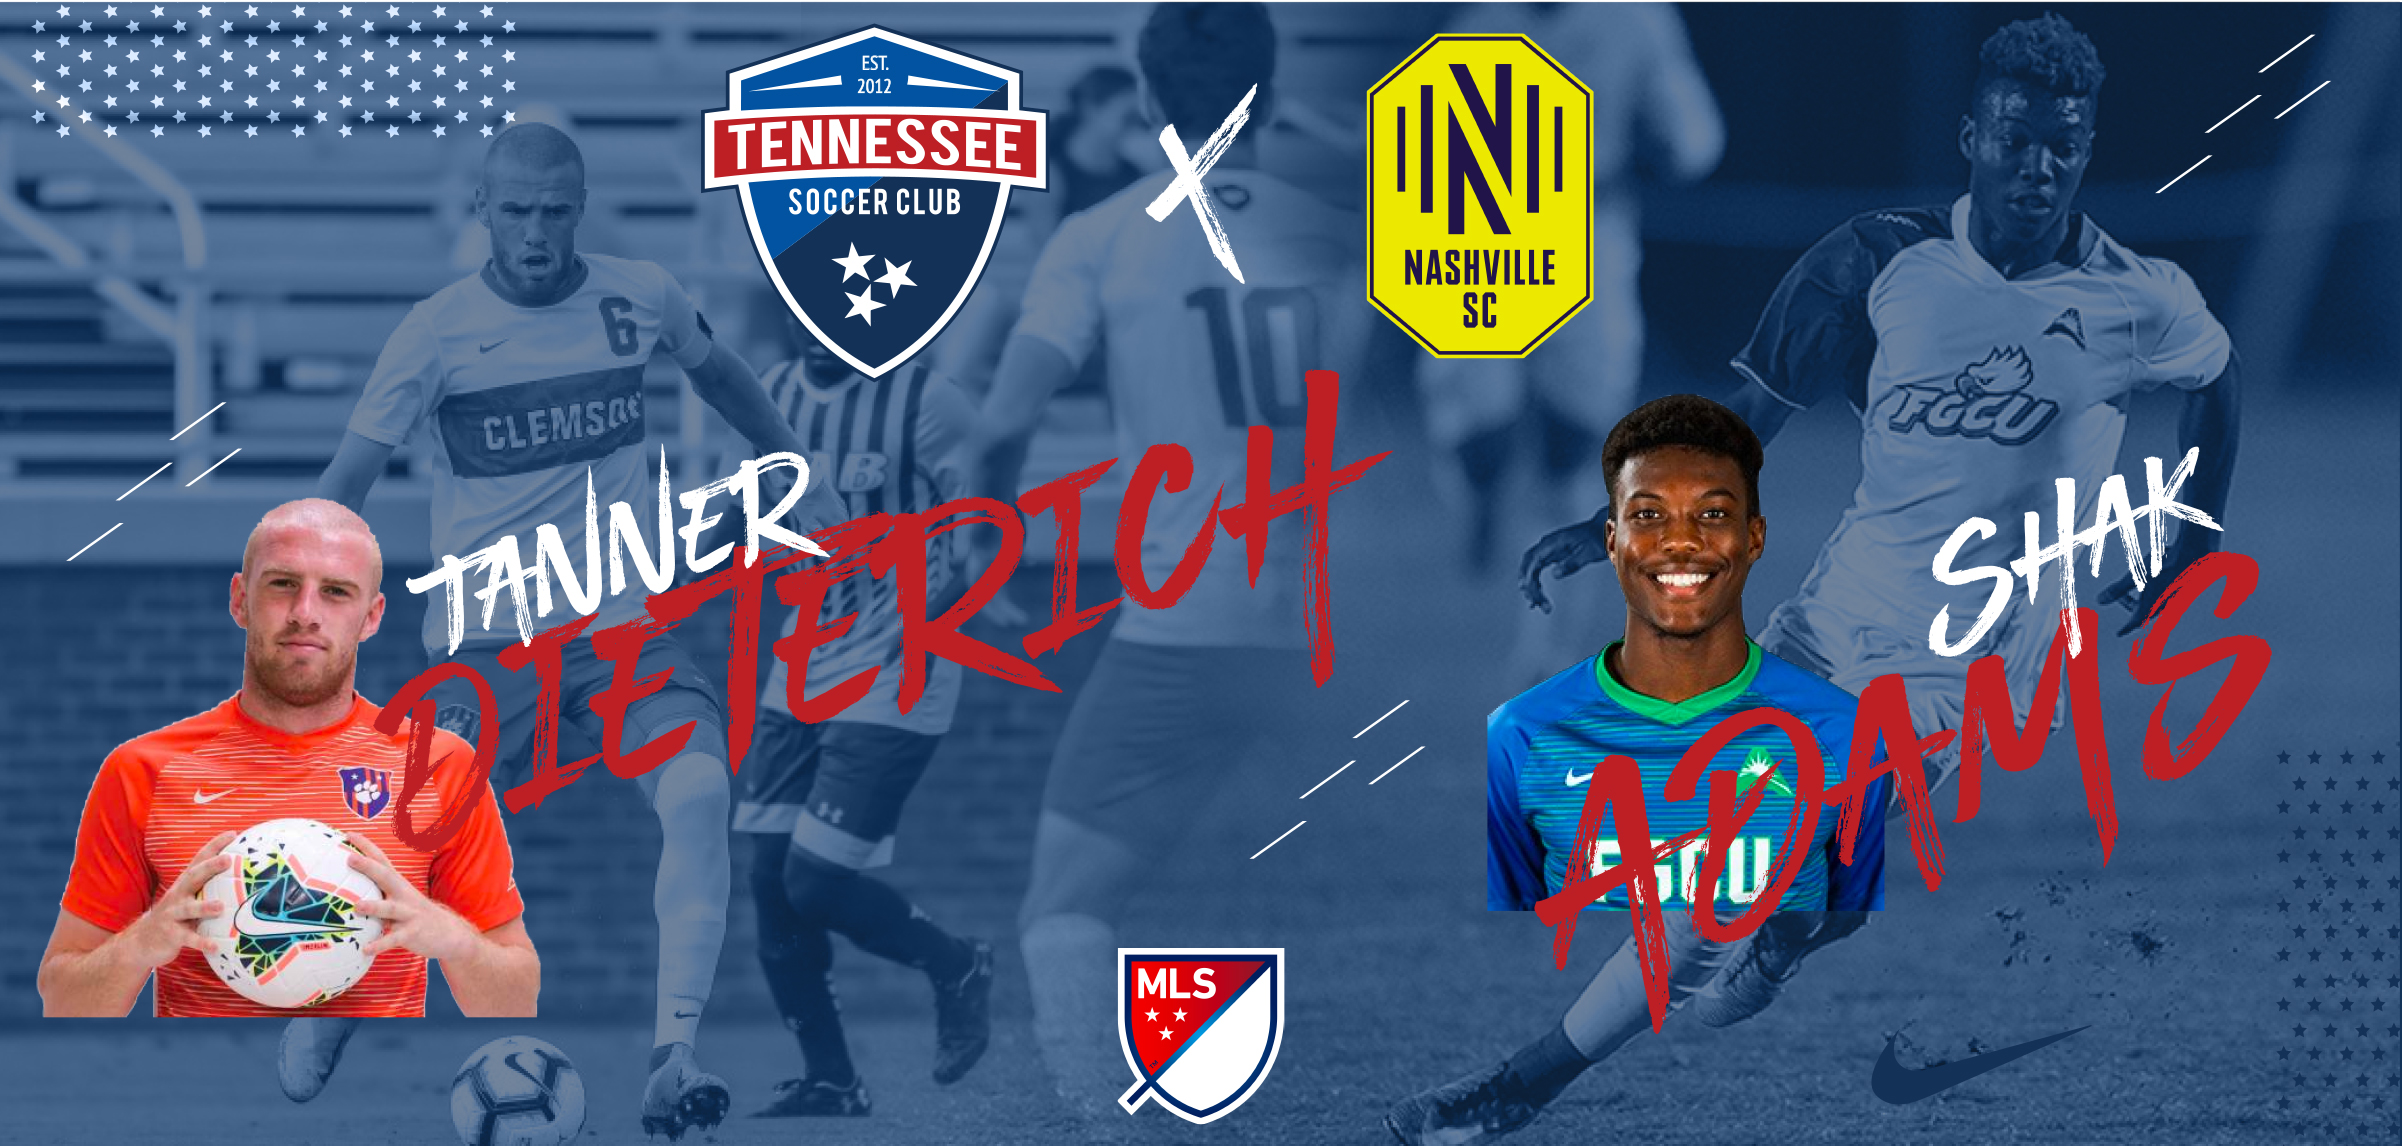 Two Former TSC Players Selected by Nashville SC in 2020 MLS SuperDraft